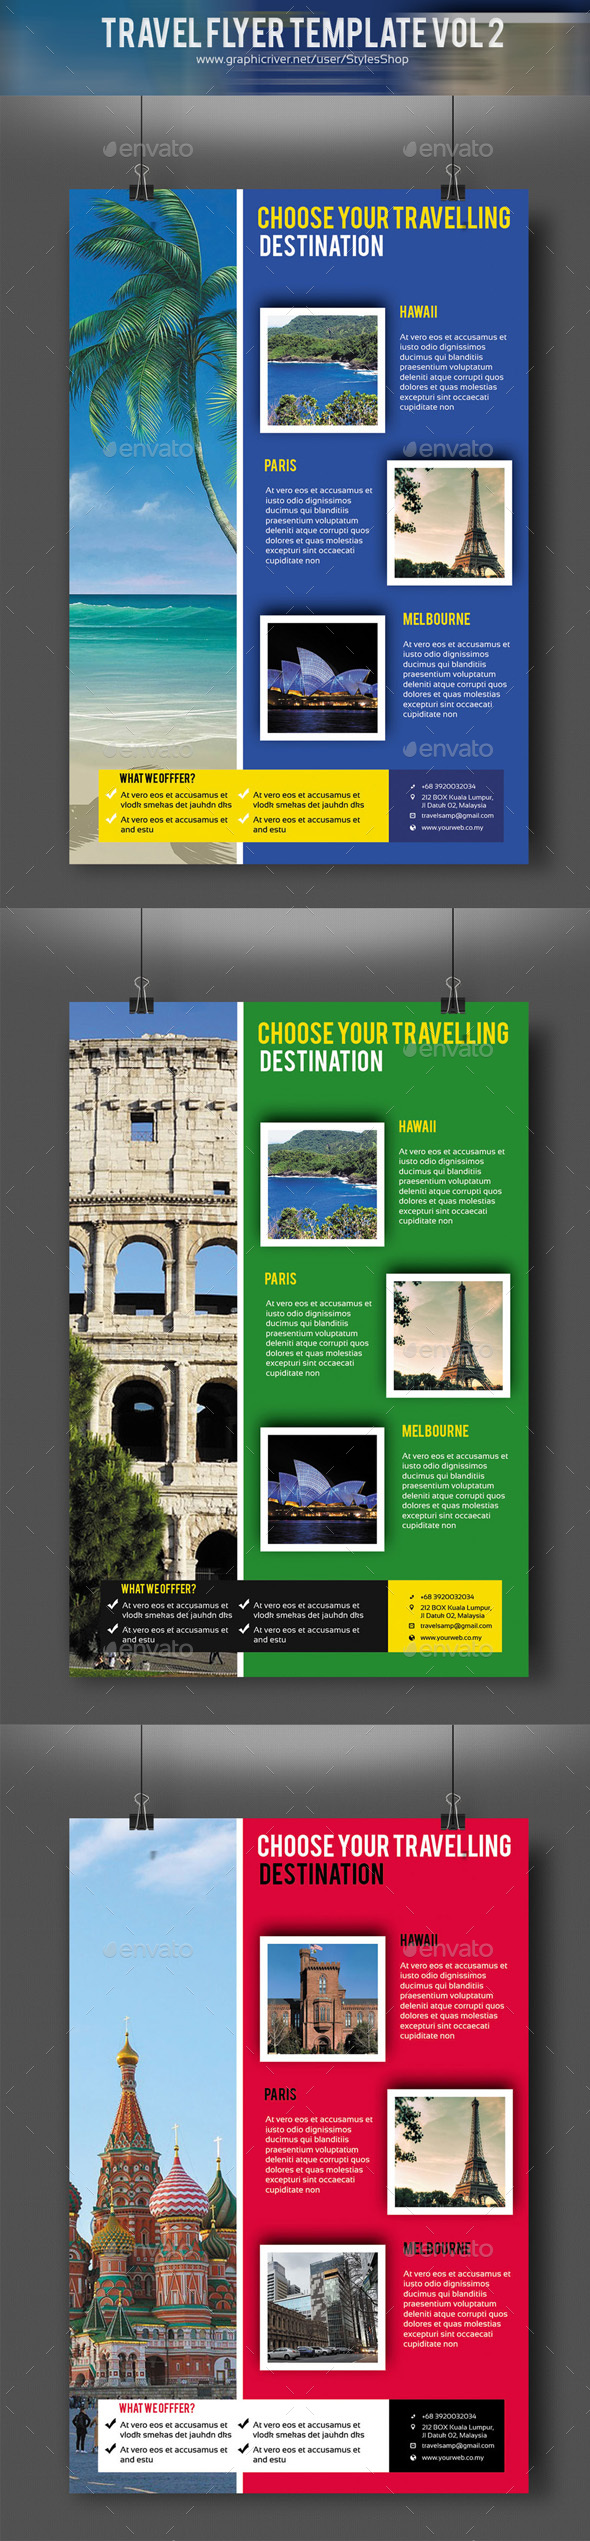 Travel Flyer Template Vol 2 - Holidays Events